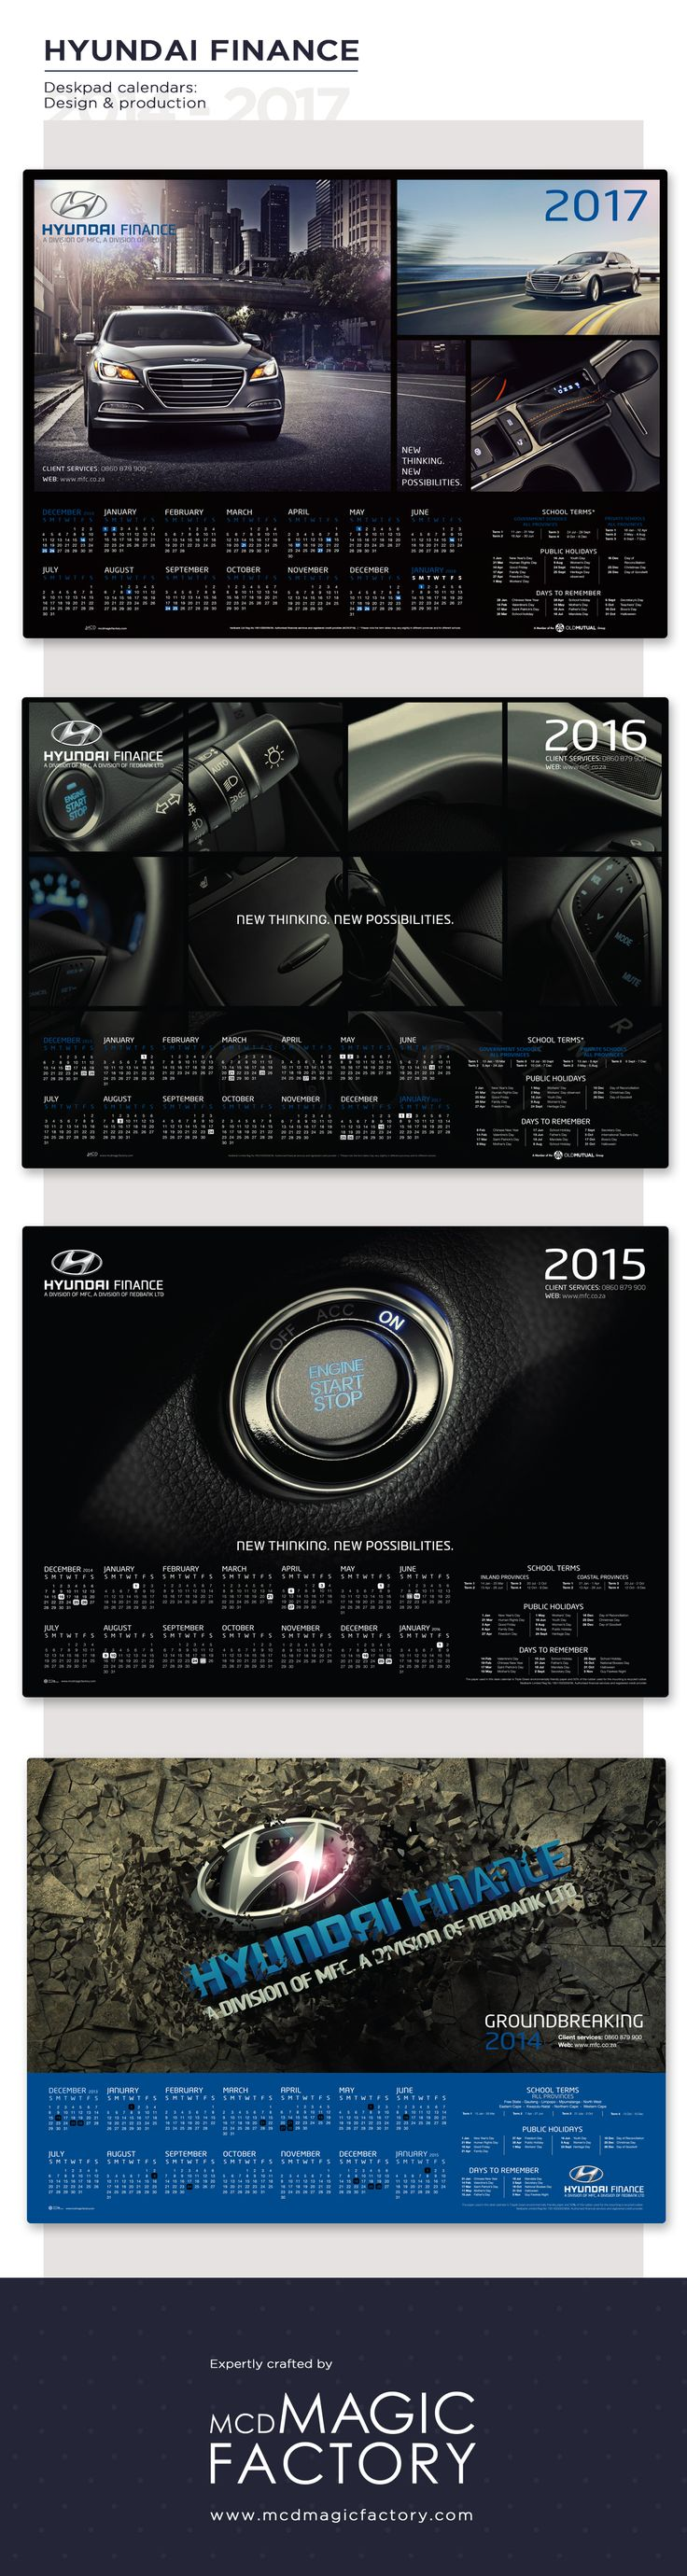 Client hyundai finance year 2014 2017 design and production of desk